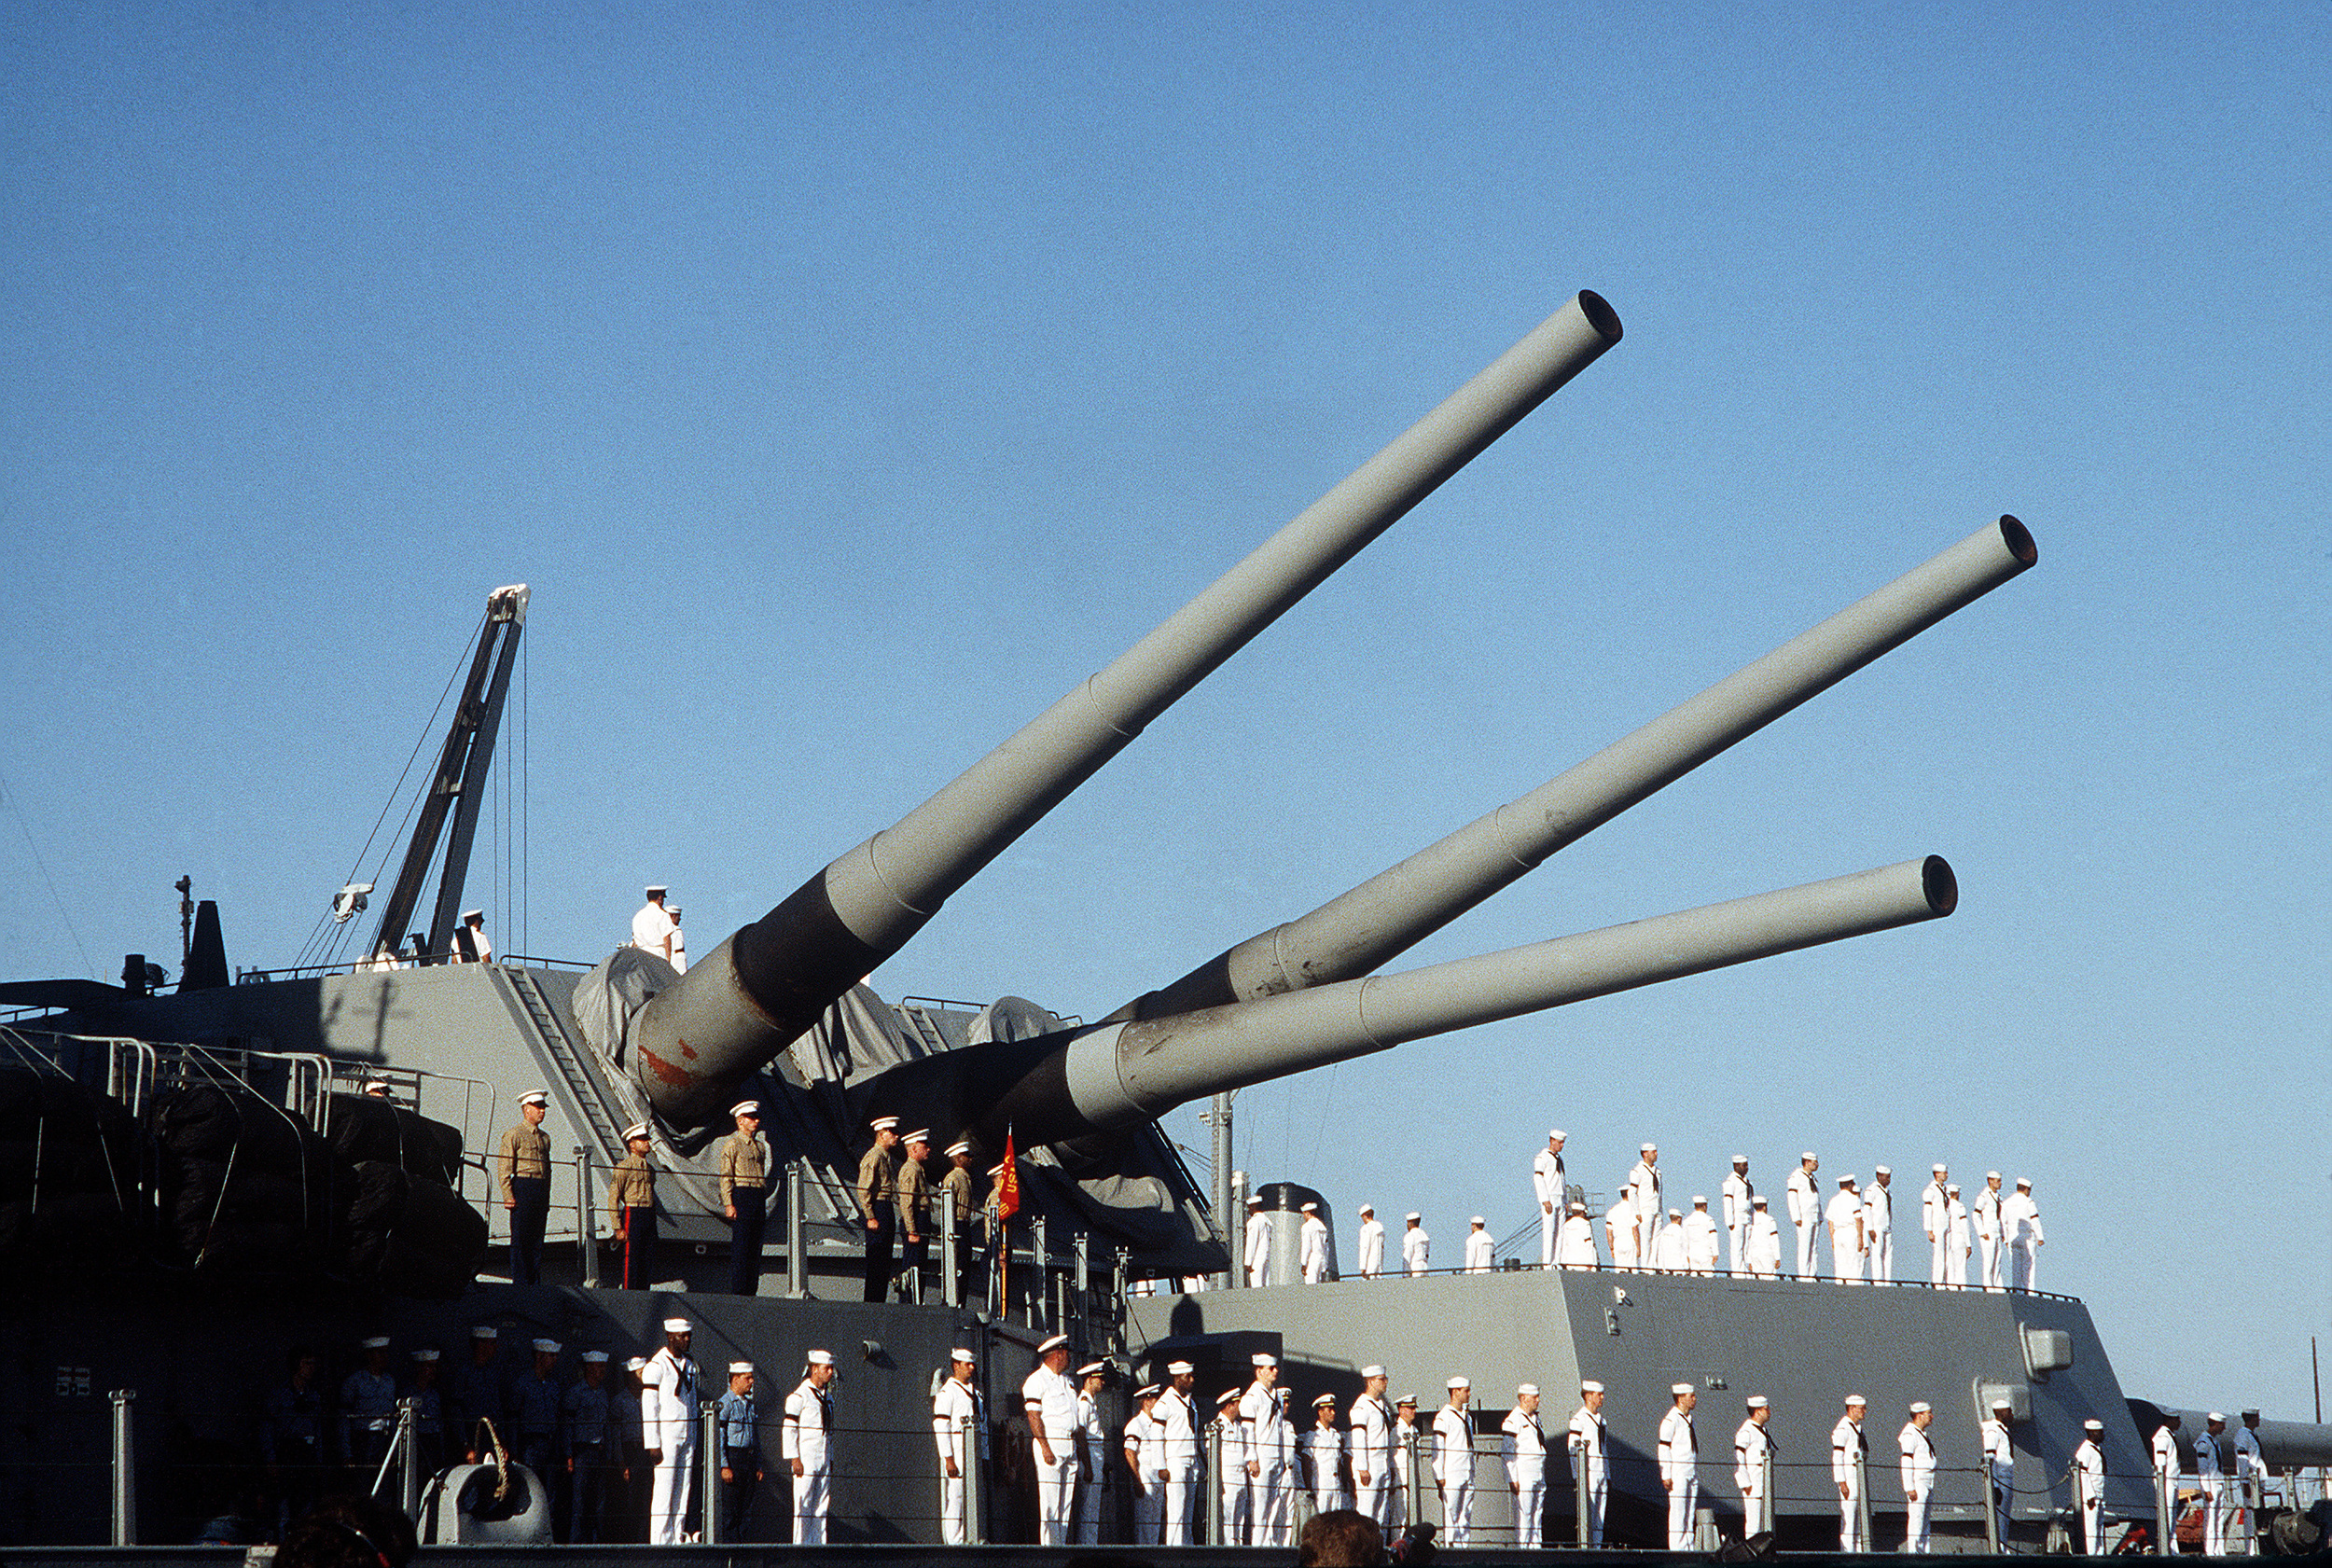 USS Iowa approaches port with damaged center gun on Turret 2   Image courtesy of Wikimedia Commons